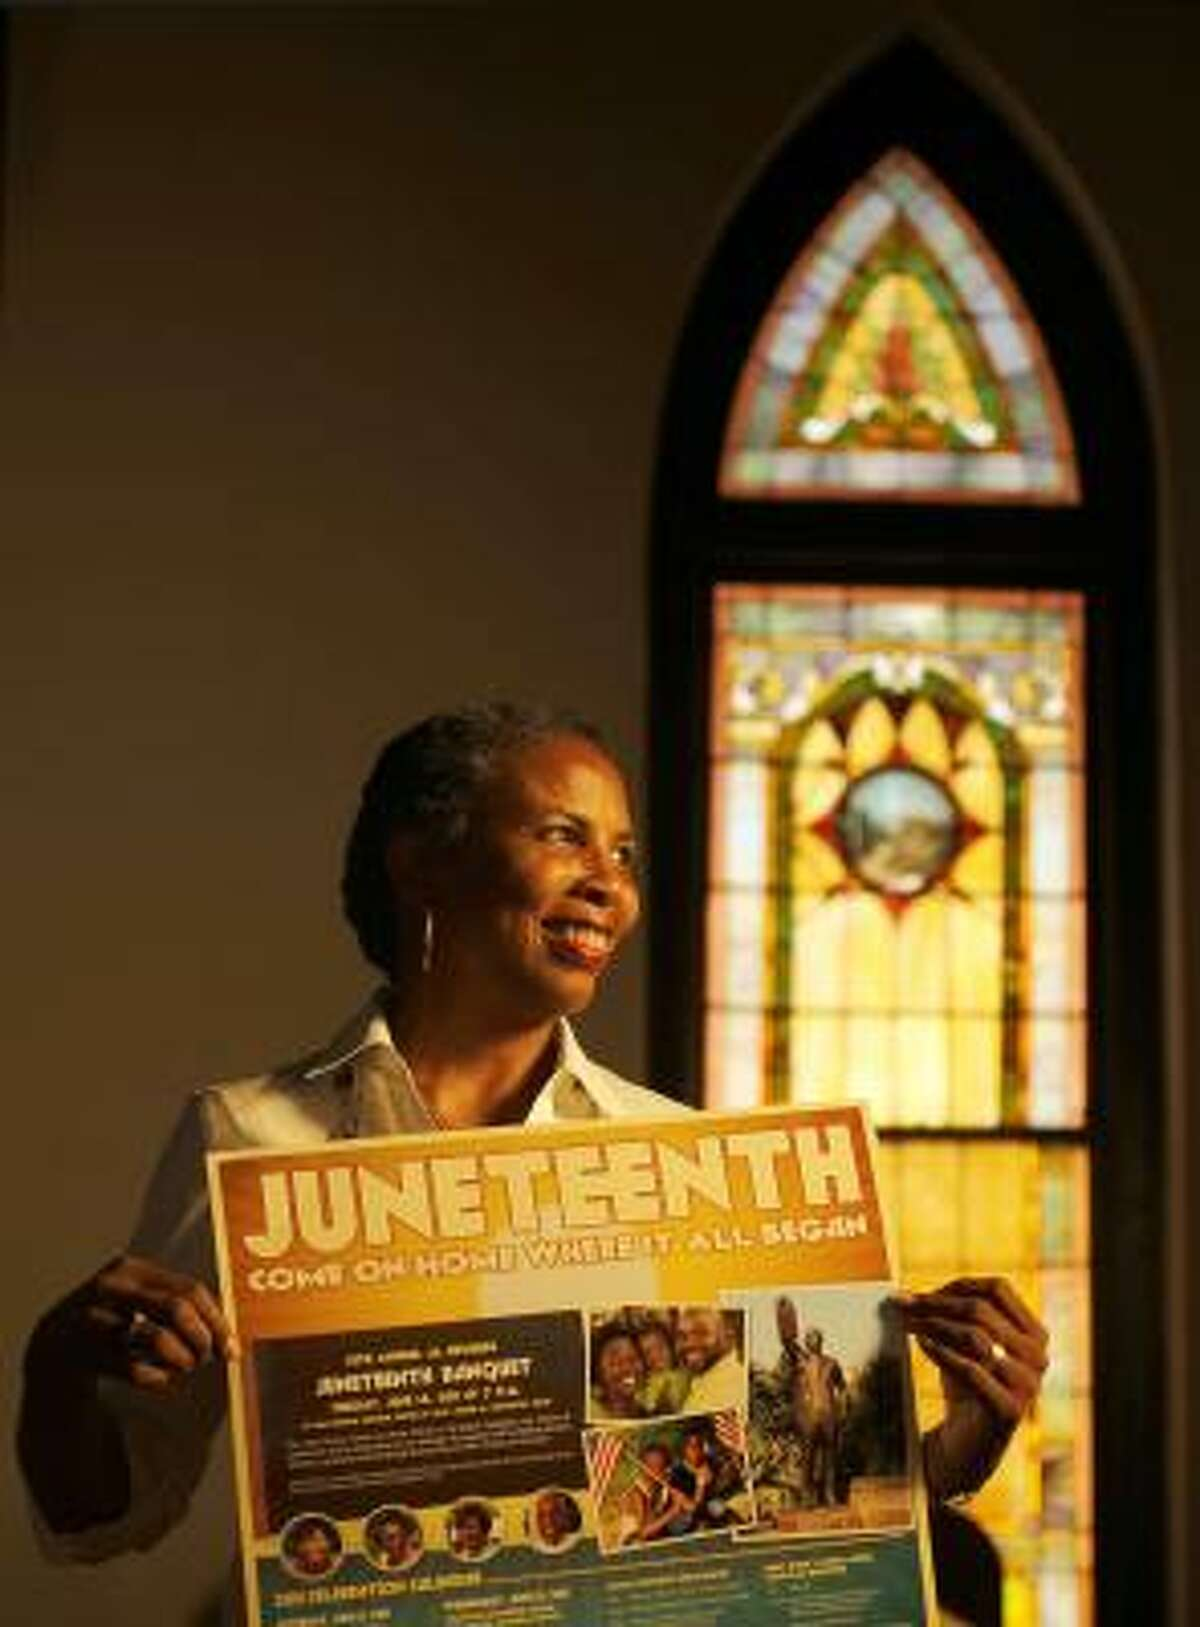 Sharon Gillins, of Galveston, says she was overwhelmed to see Juneteenth celebrated outside Texas.